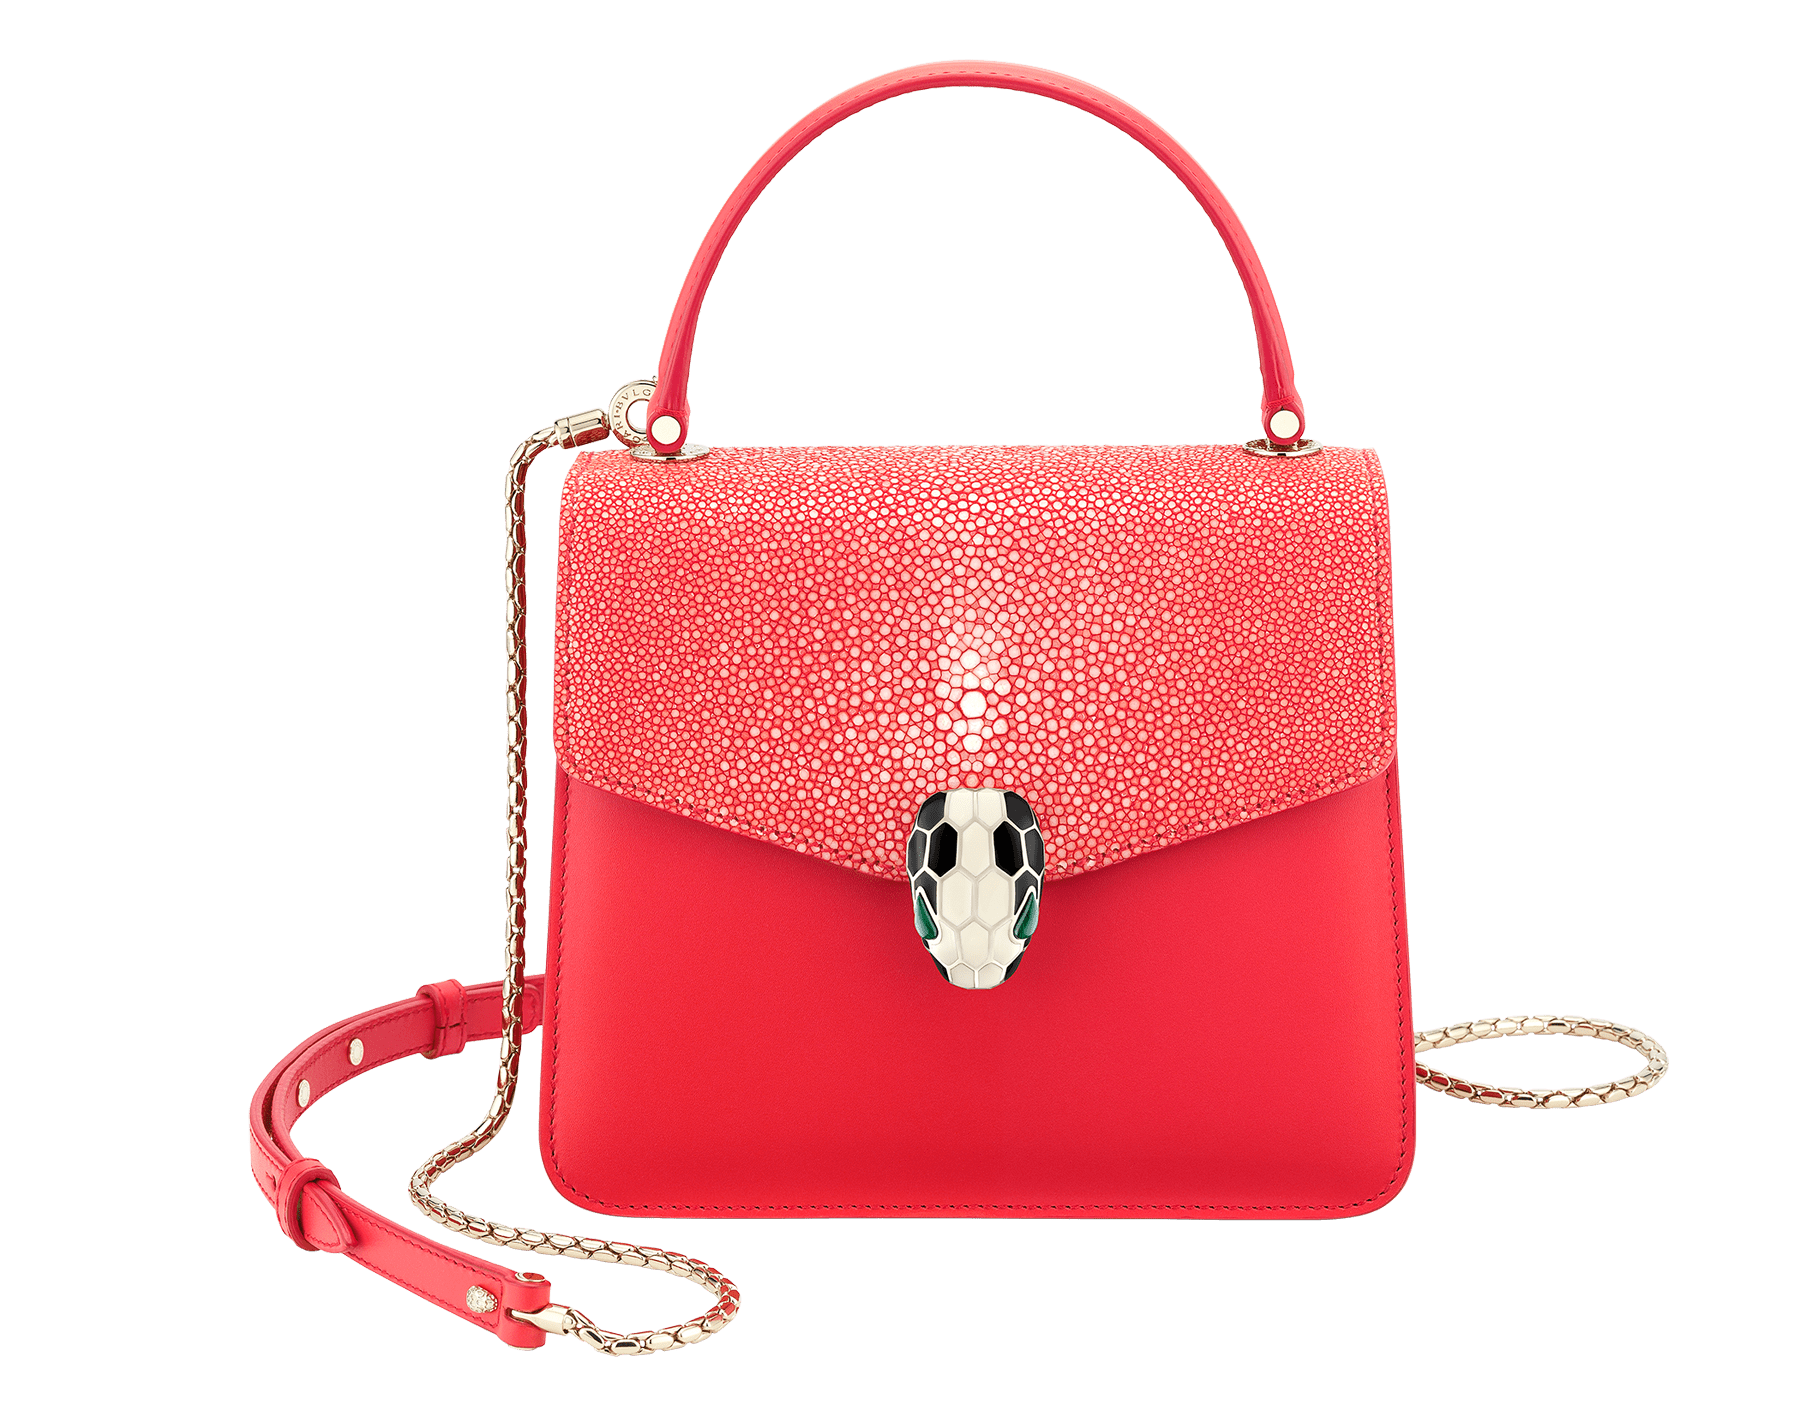 Serpenti Forever crossbody bag in sea star coral galuchat skin and smooth calf leather. Snakehead closure in light gold plated brass decorated with black and white enamel, and green malachite eyes. 287977 image 1